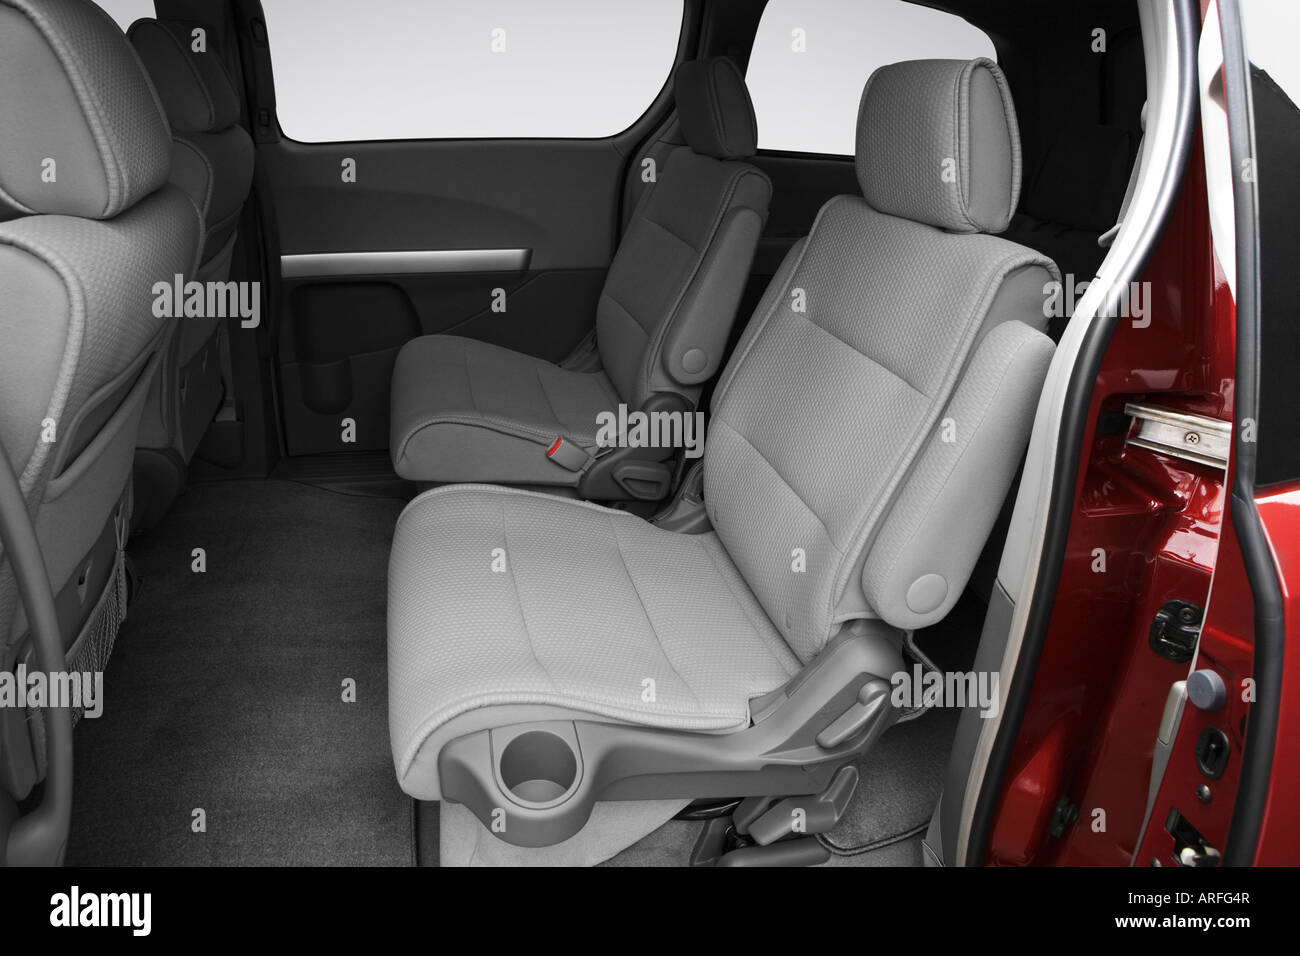 2008 nissan quest seating gallery hd cars wallpaper mini seats stock photos mini seats stock images page 5 alamy 2007 nissan quest 35 s vanachro Gallery